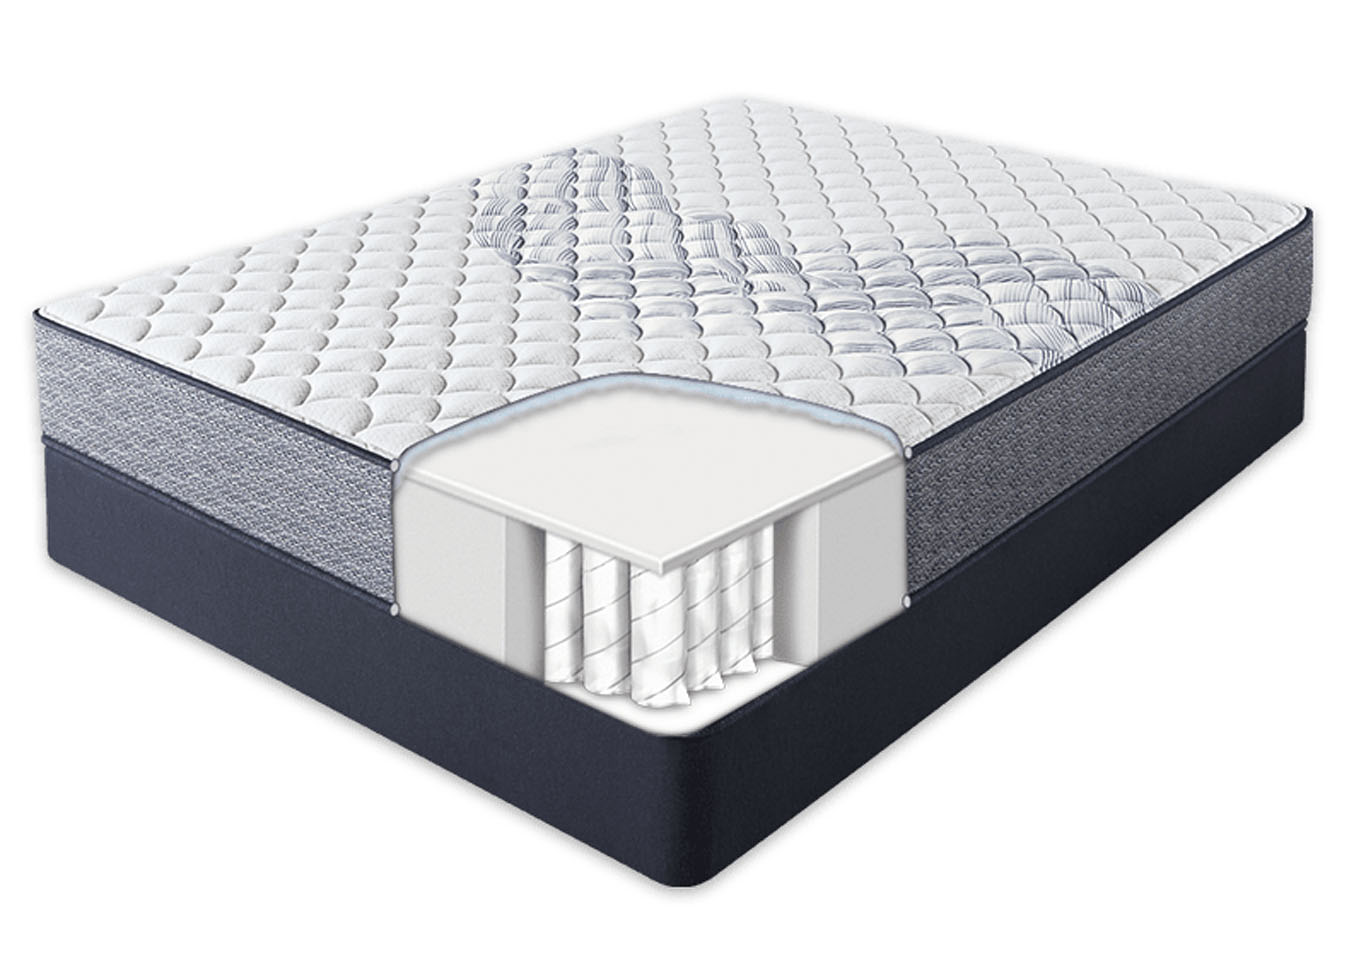 Serta Sleep Retreat Park City Extra Firm Mattress and Foundation Twin,Instore